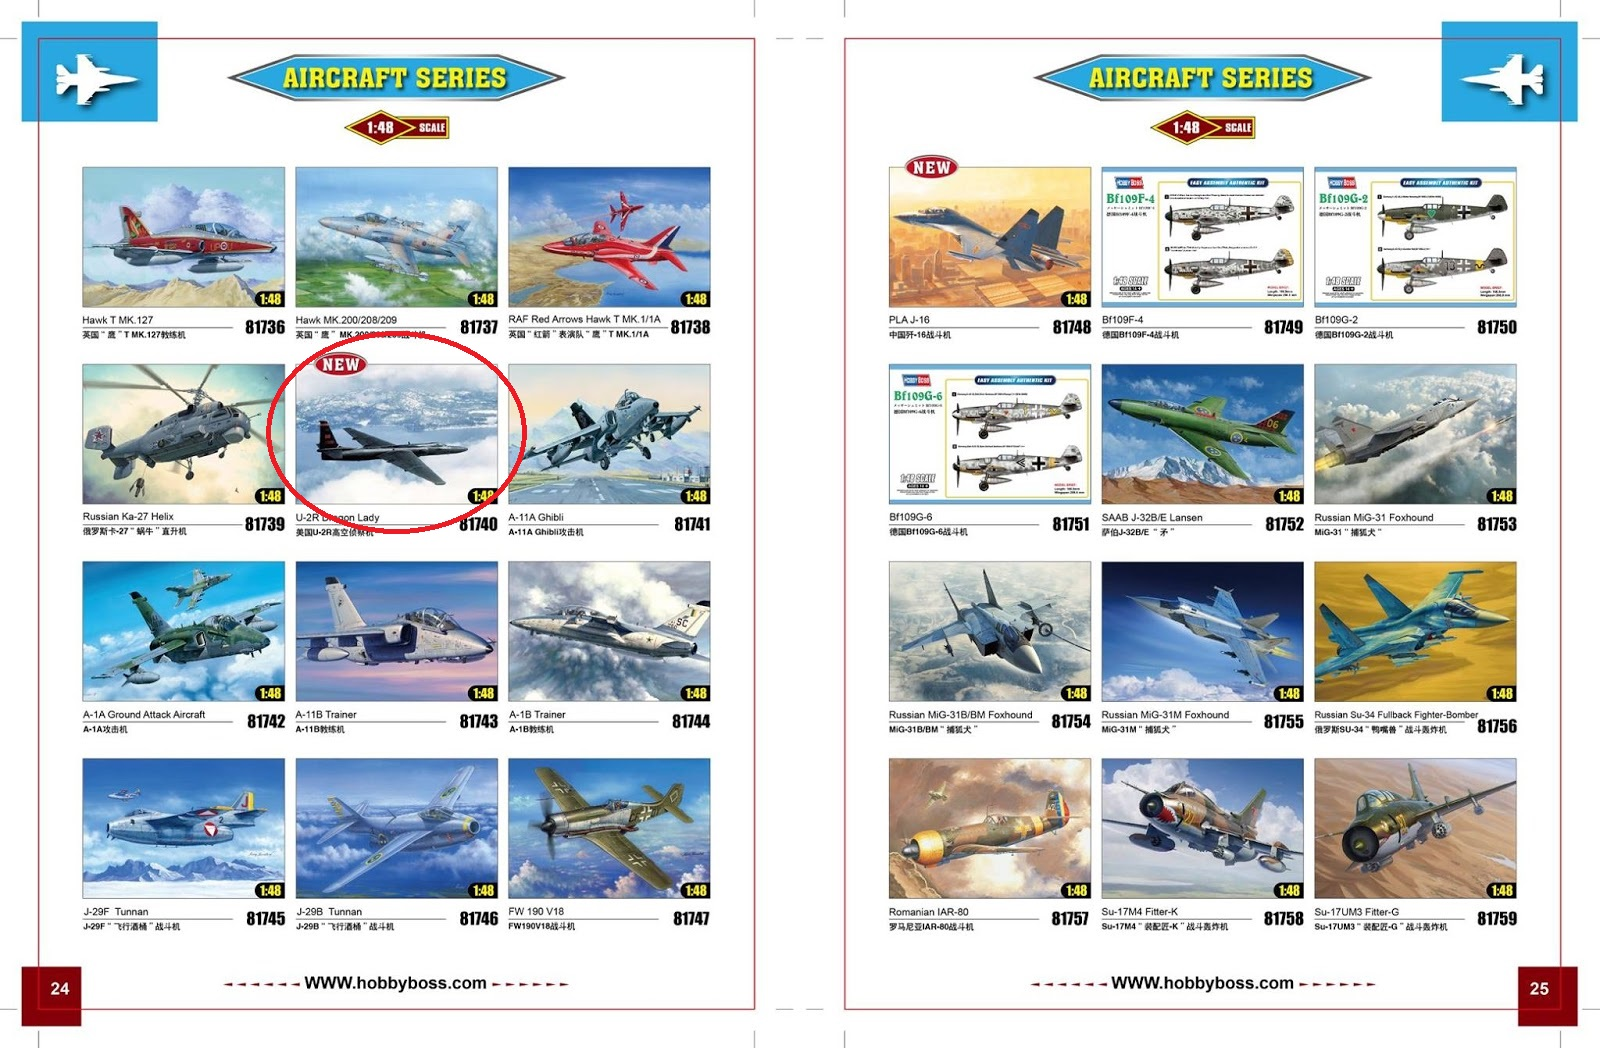 Hobbyboss 2018 Catalogue (13).jpg